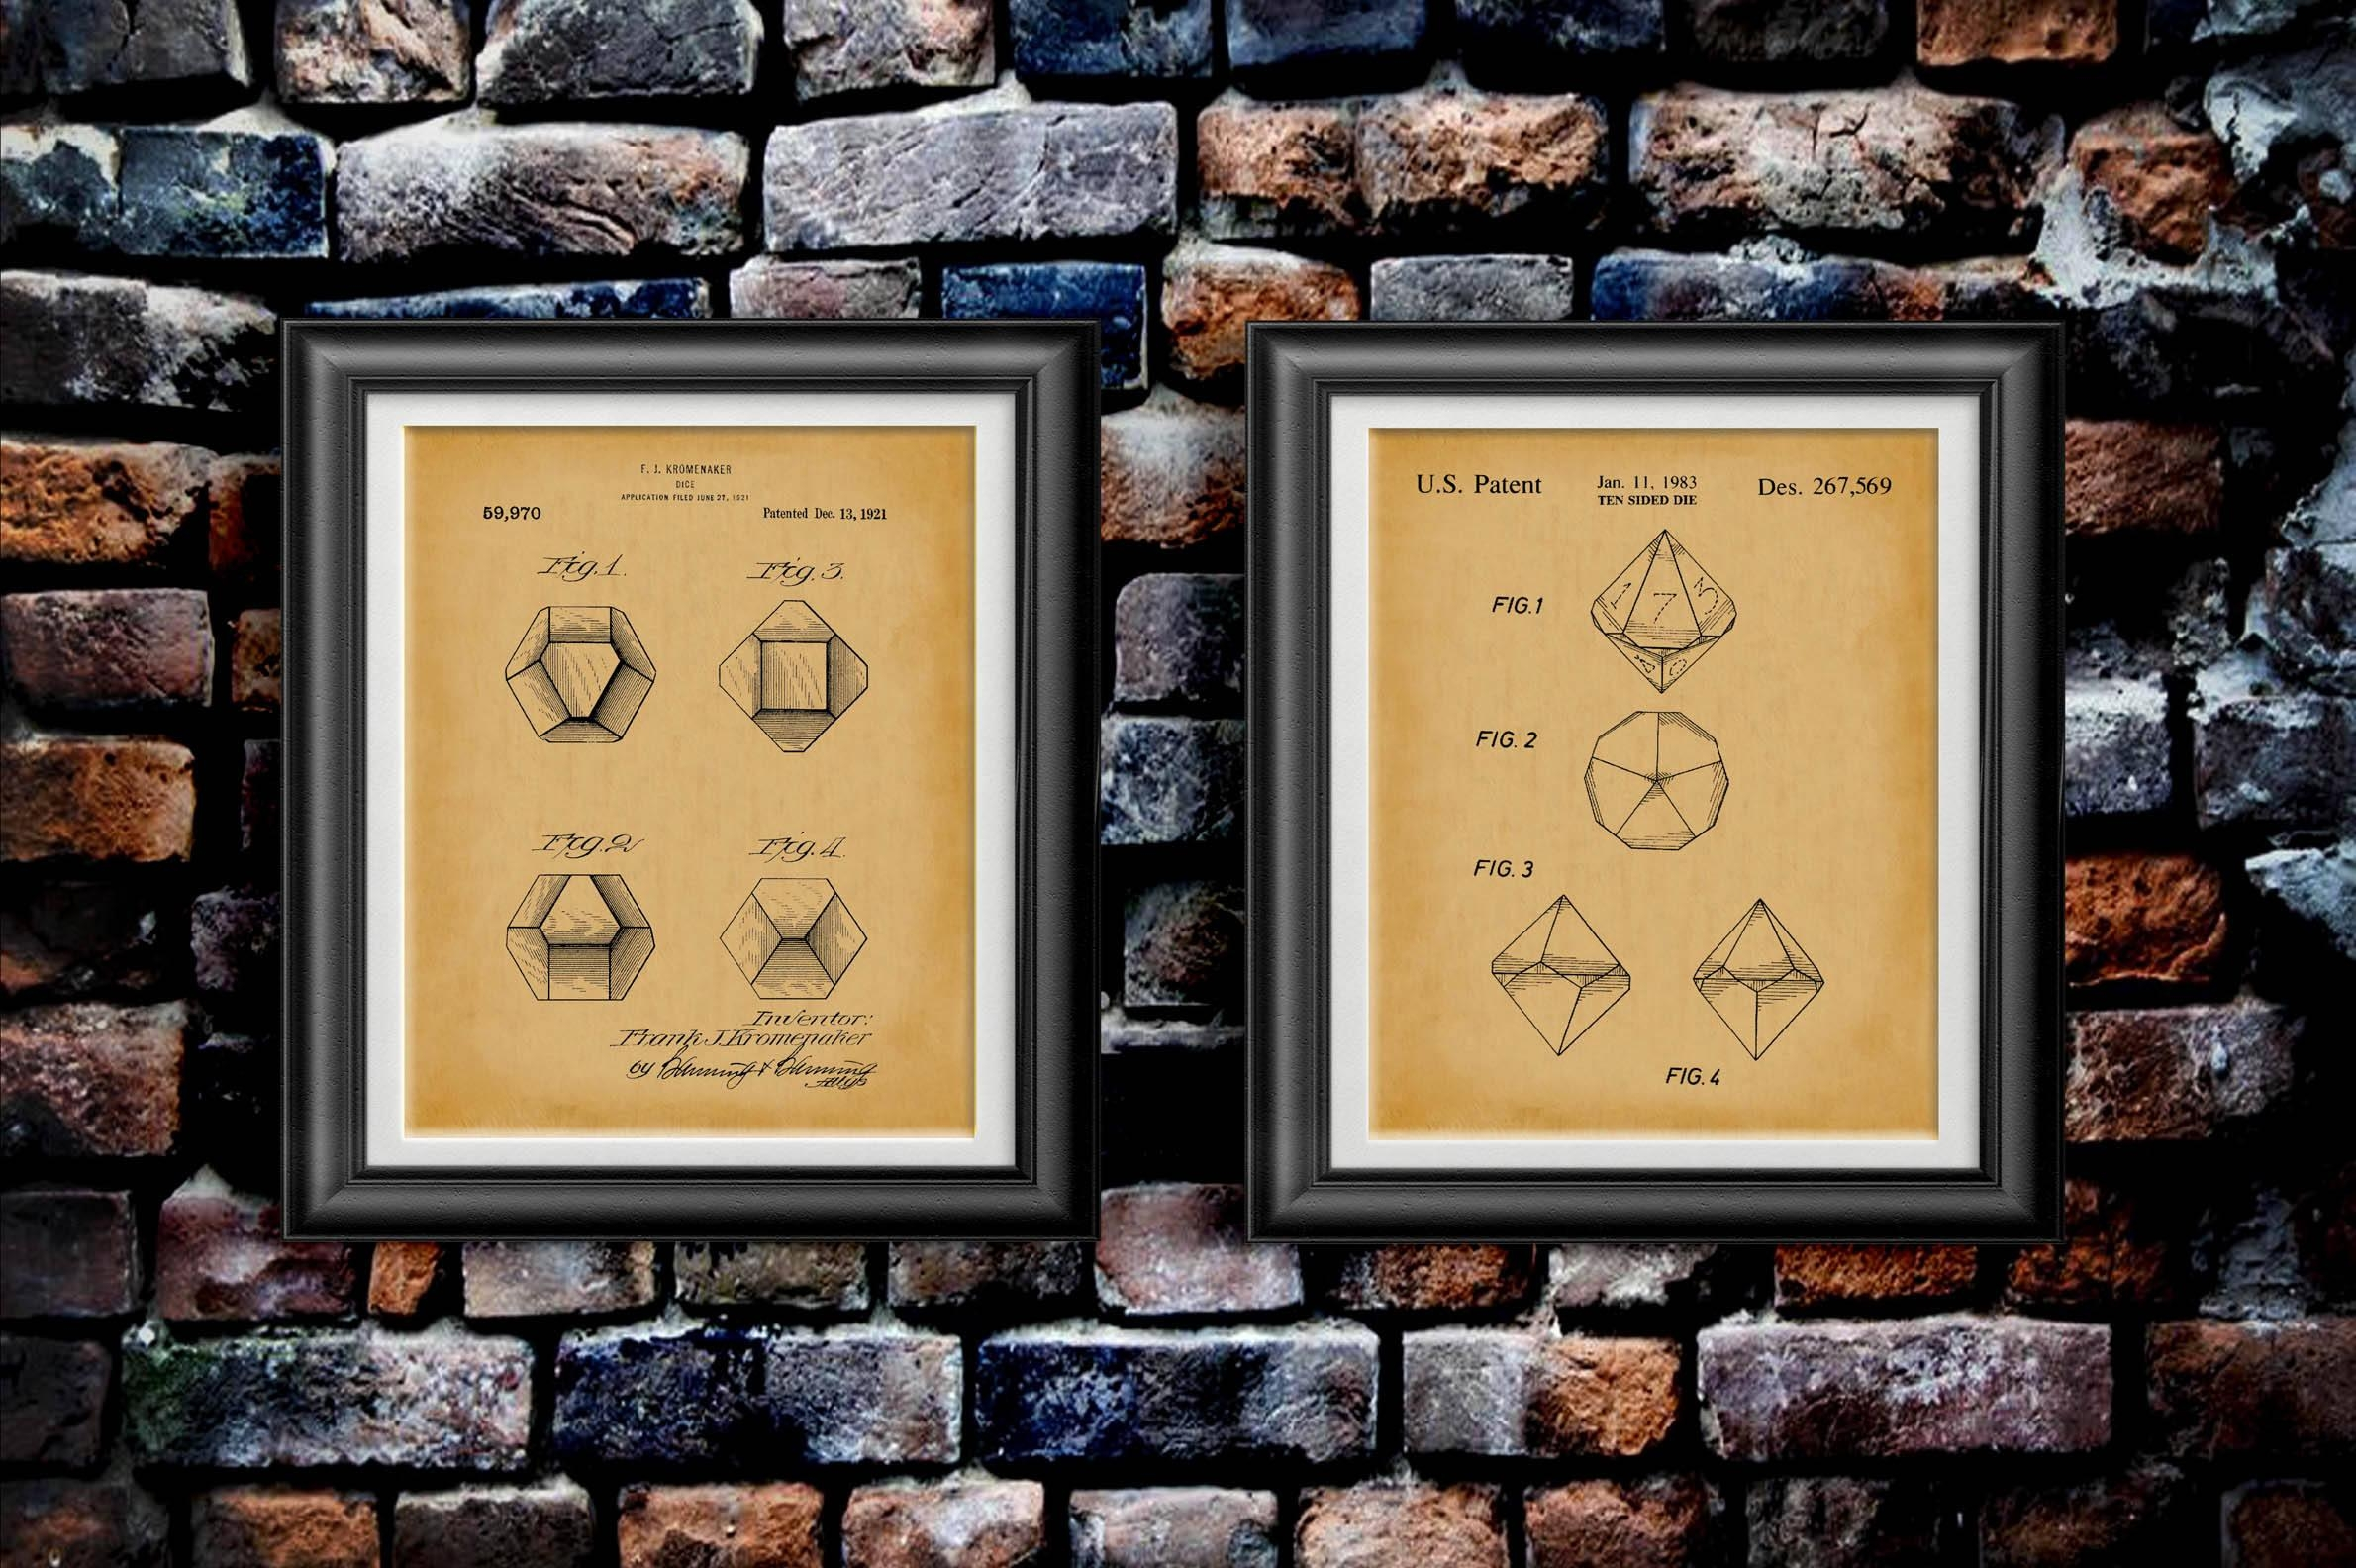 Dungeons And Dragons Dice Wall Art D&d Decor Dnd Artwork Rpg Pertaining To Midnight Italian Plates Wall Art (View 9 of 20)